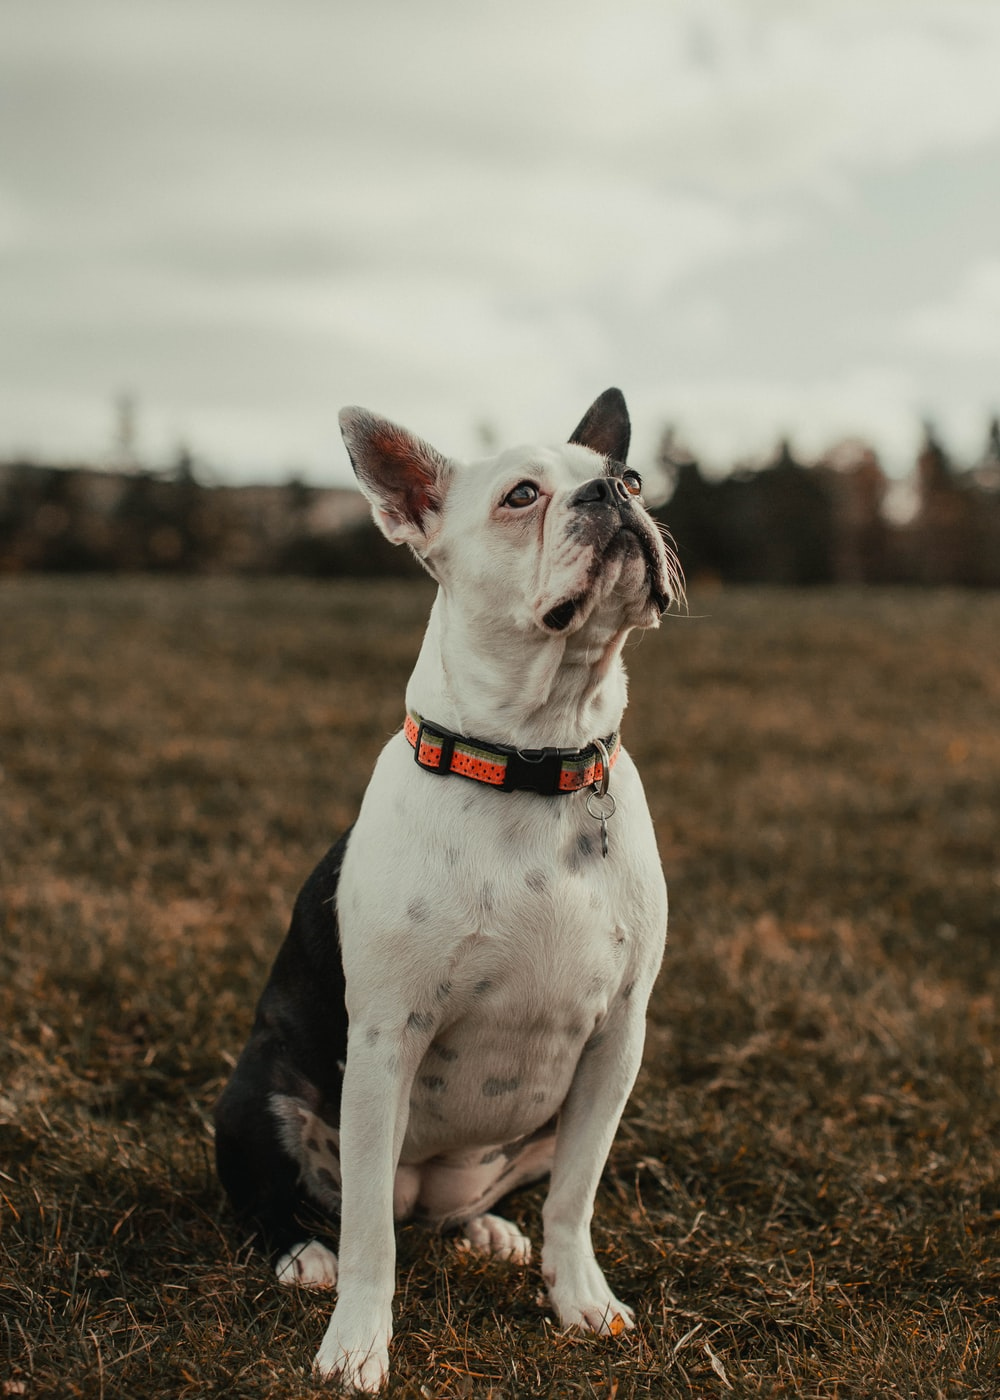 white and black short coated dog on brown field during daytime